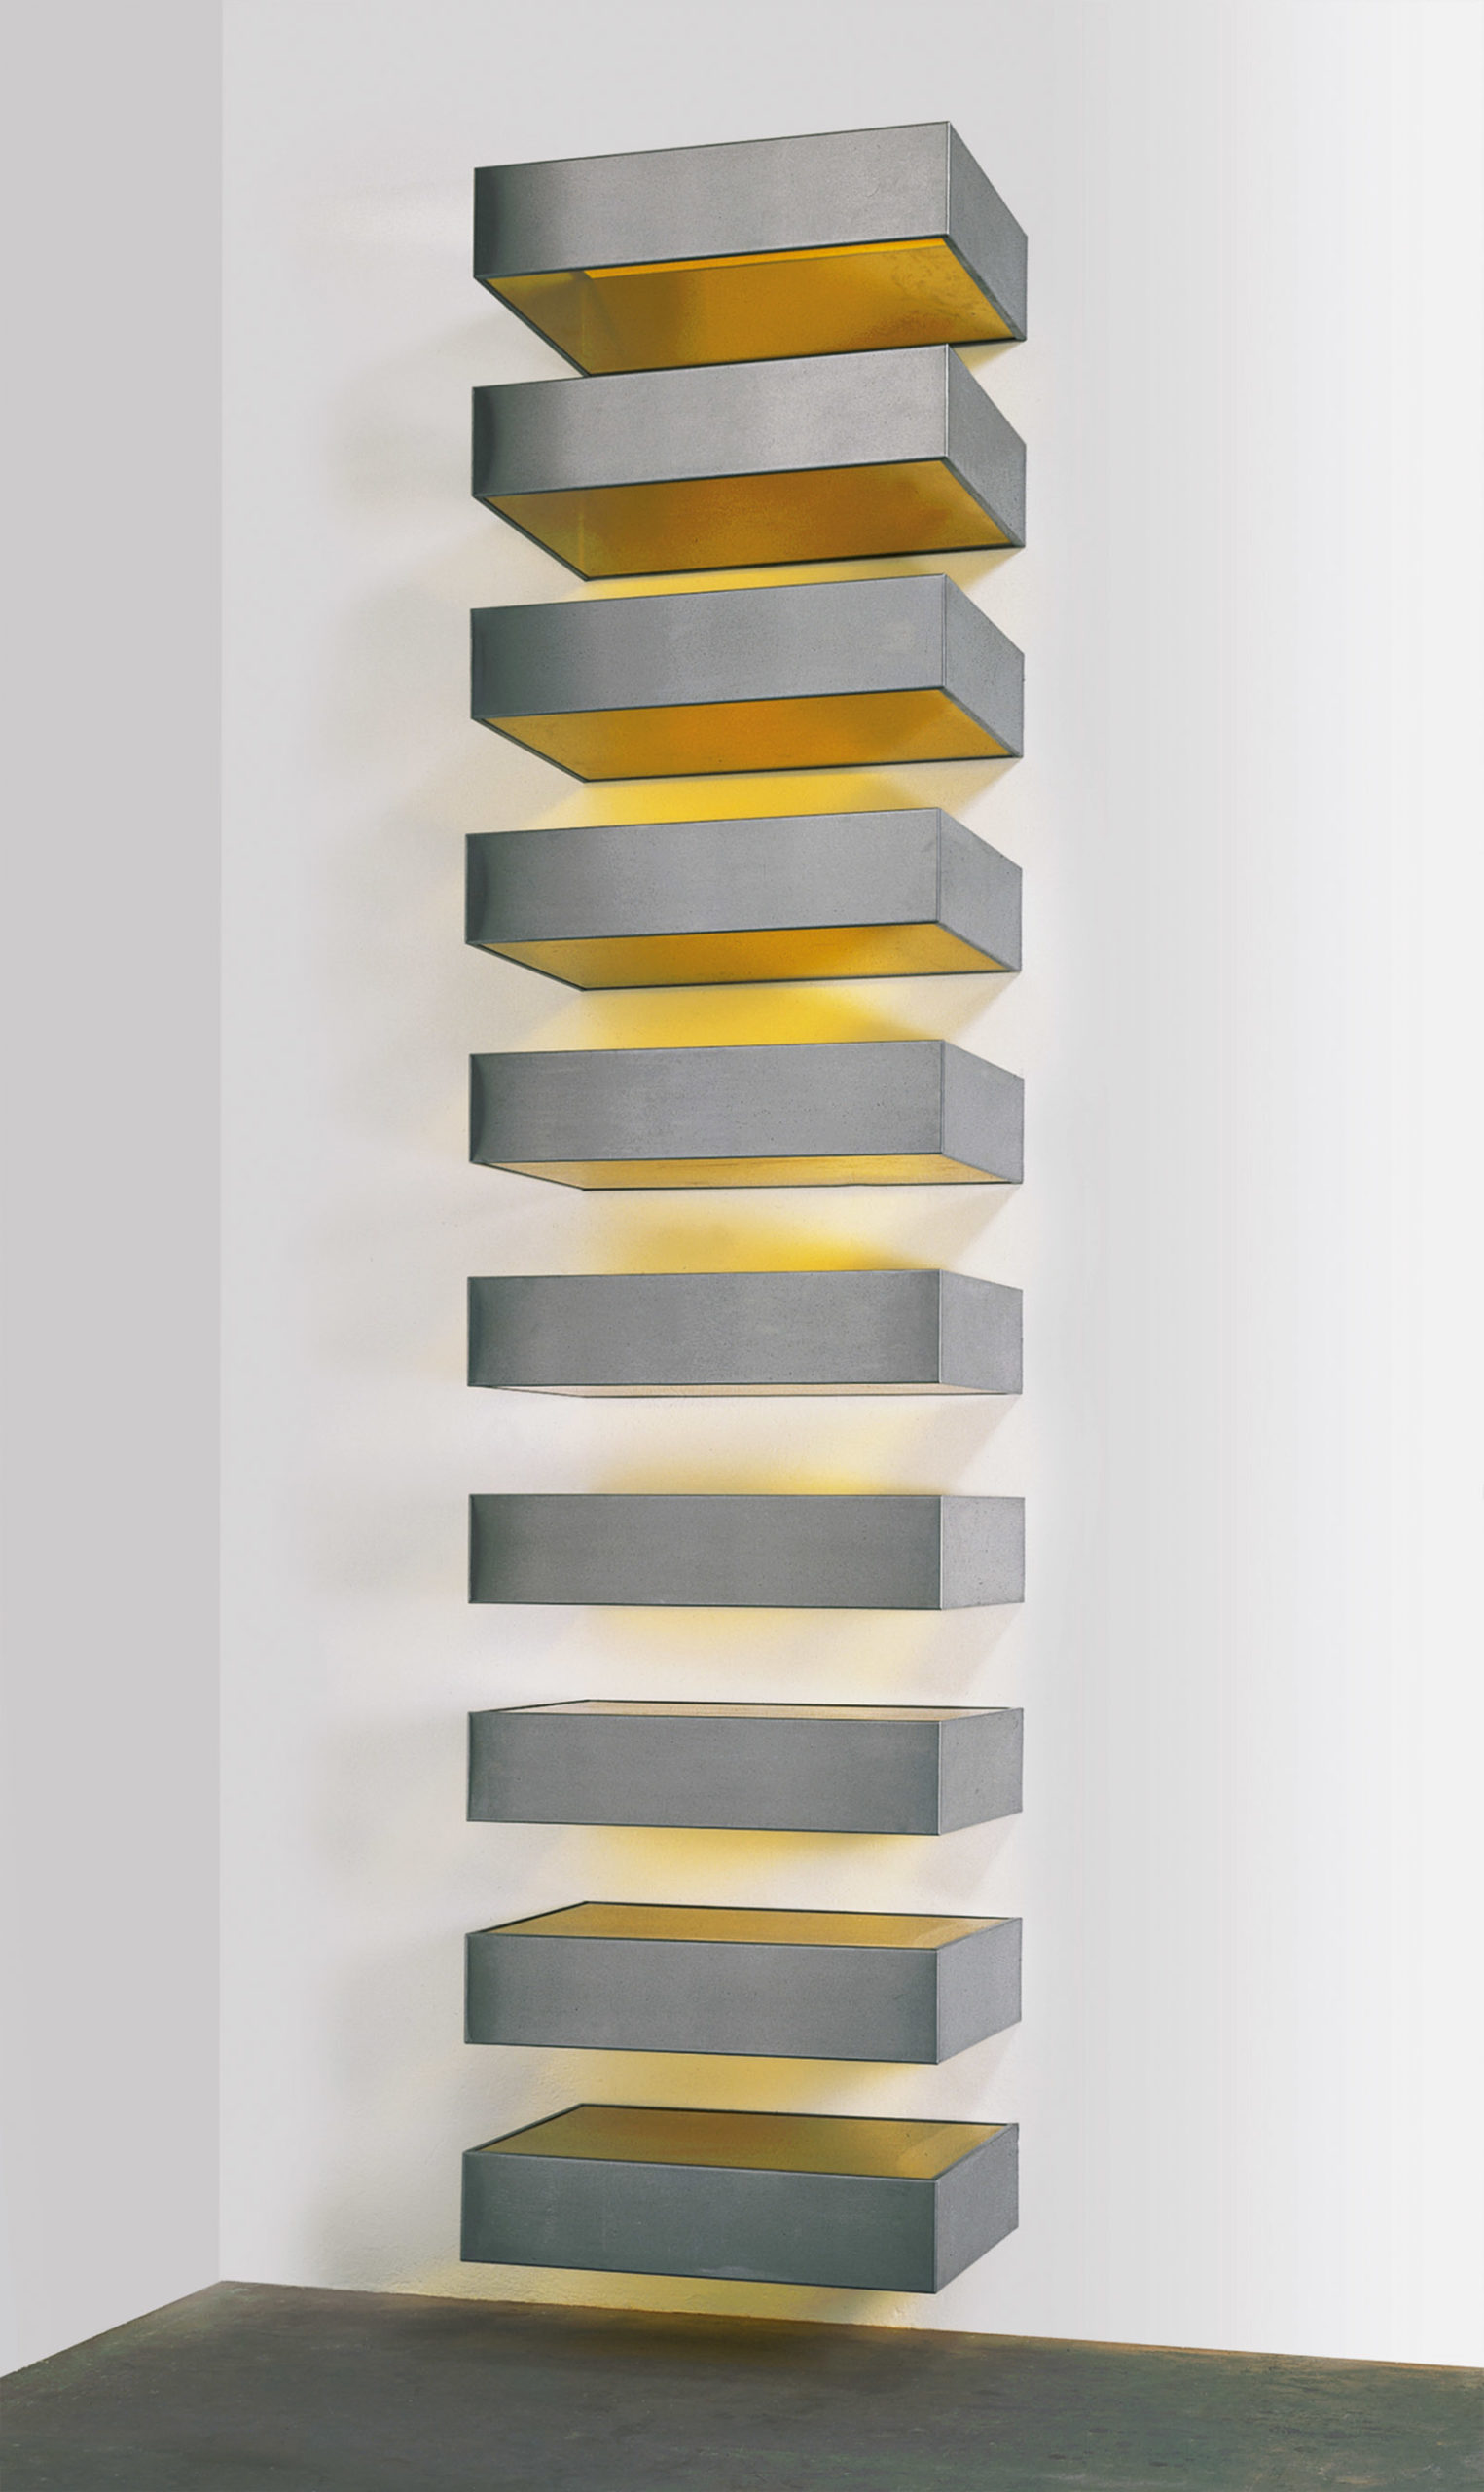 Untitled (DSS 123), stainless steel and plexiglass, 1968; by Donald Judd